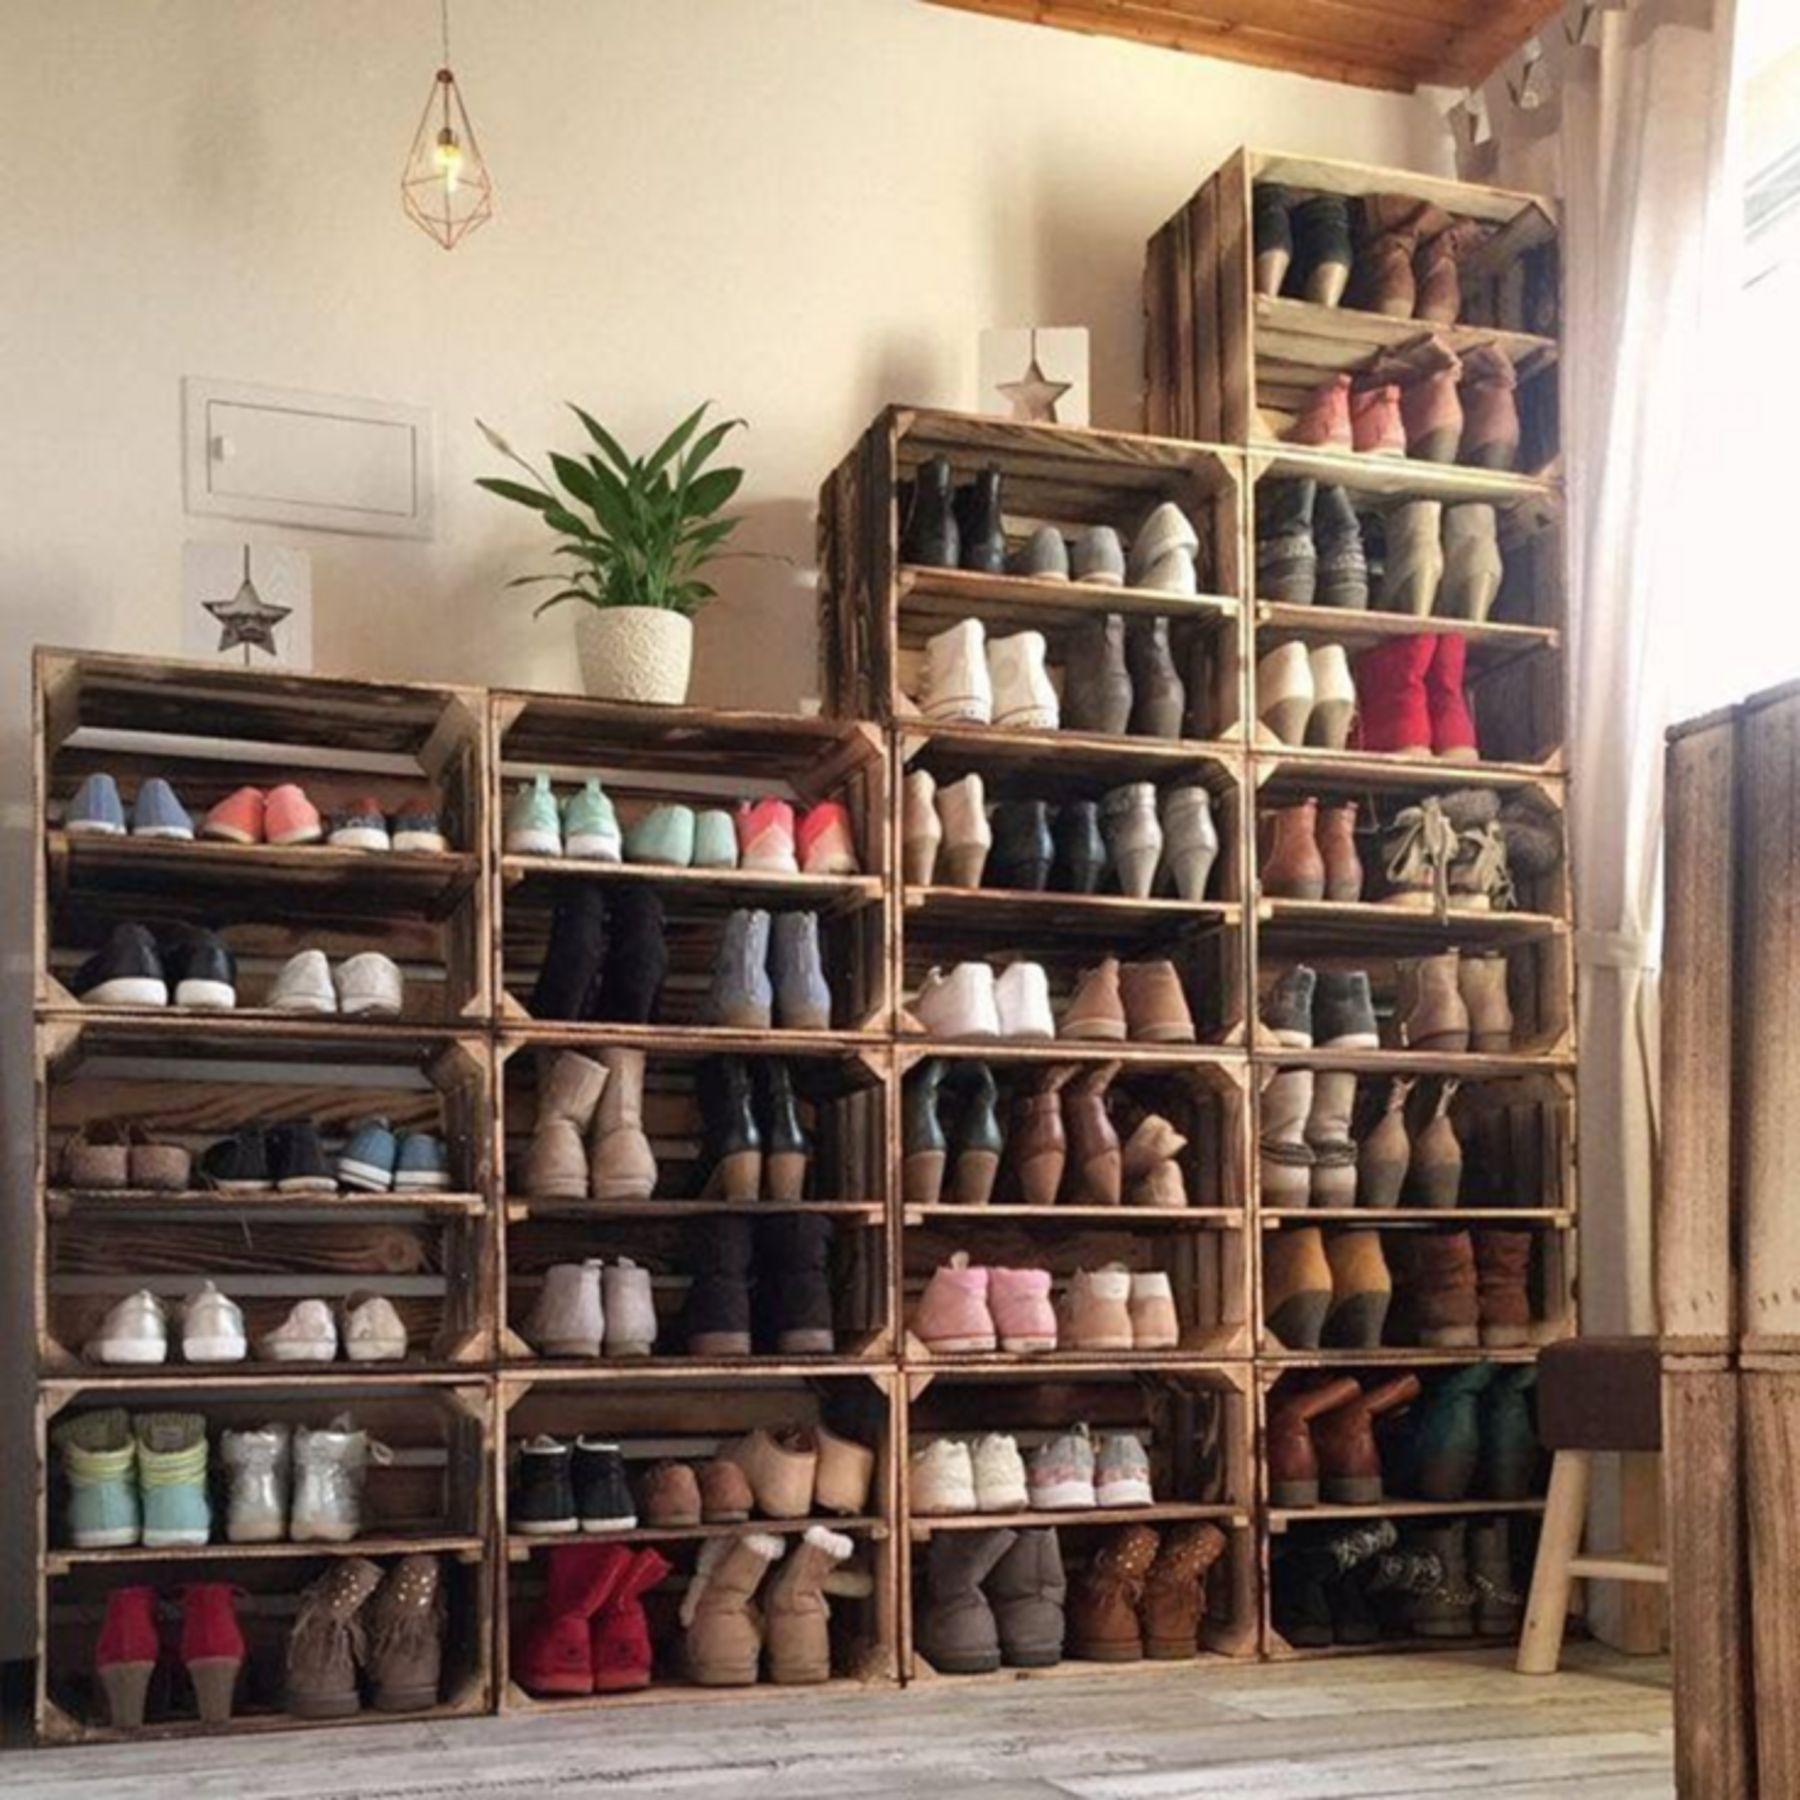 Top 8 Creative Shoes Storage Design Ideas You Must Try Diy Shoe Storage Shoe Storage Design Wood Shoe Storage